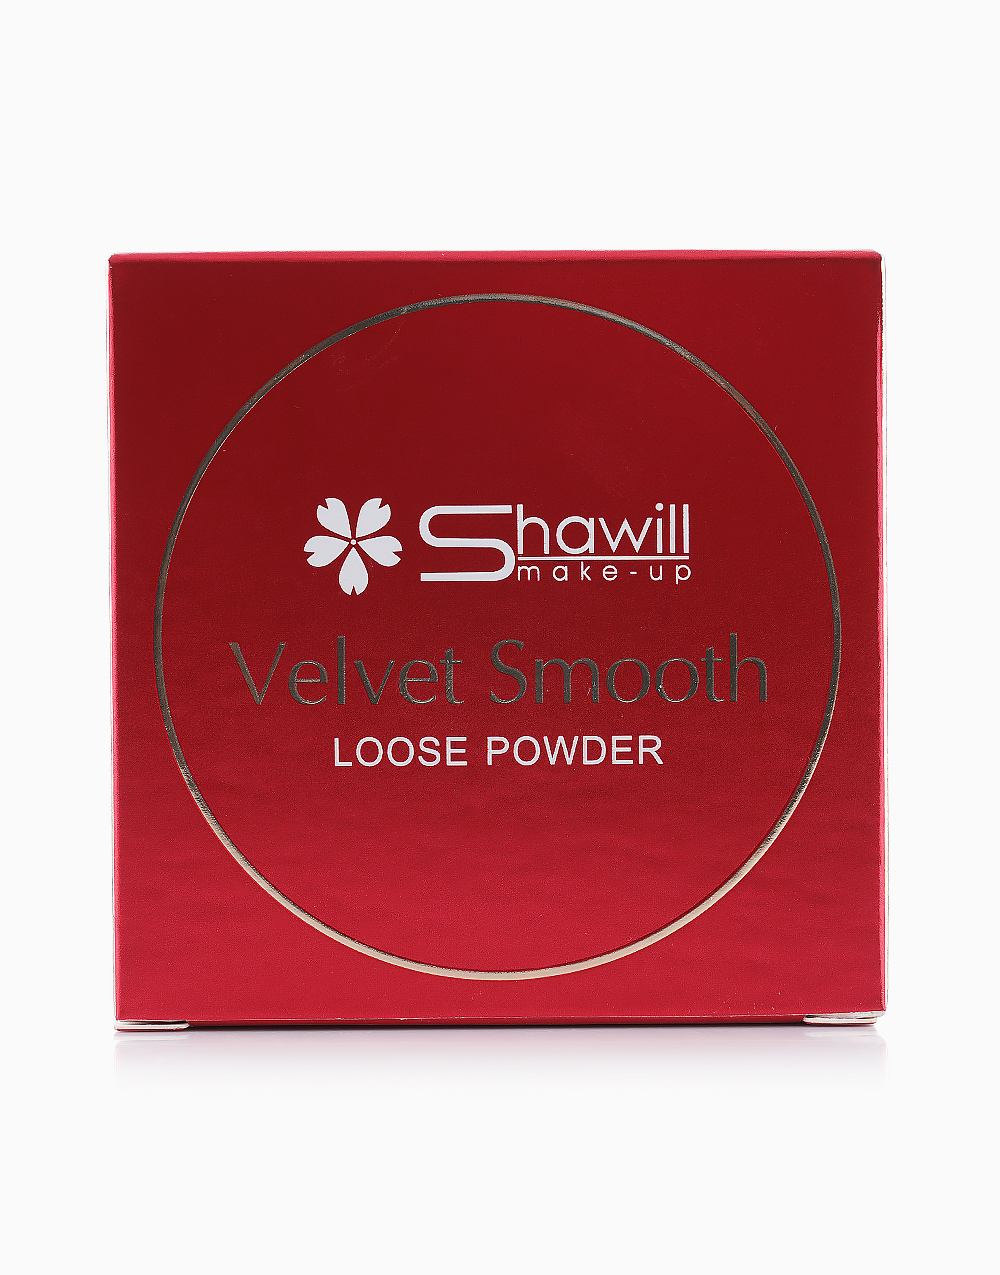 Velvet Smooth Loose Powder by Shawill Cosmetics | #2